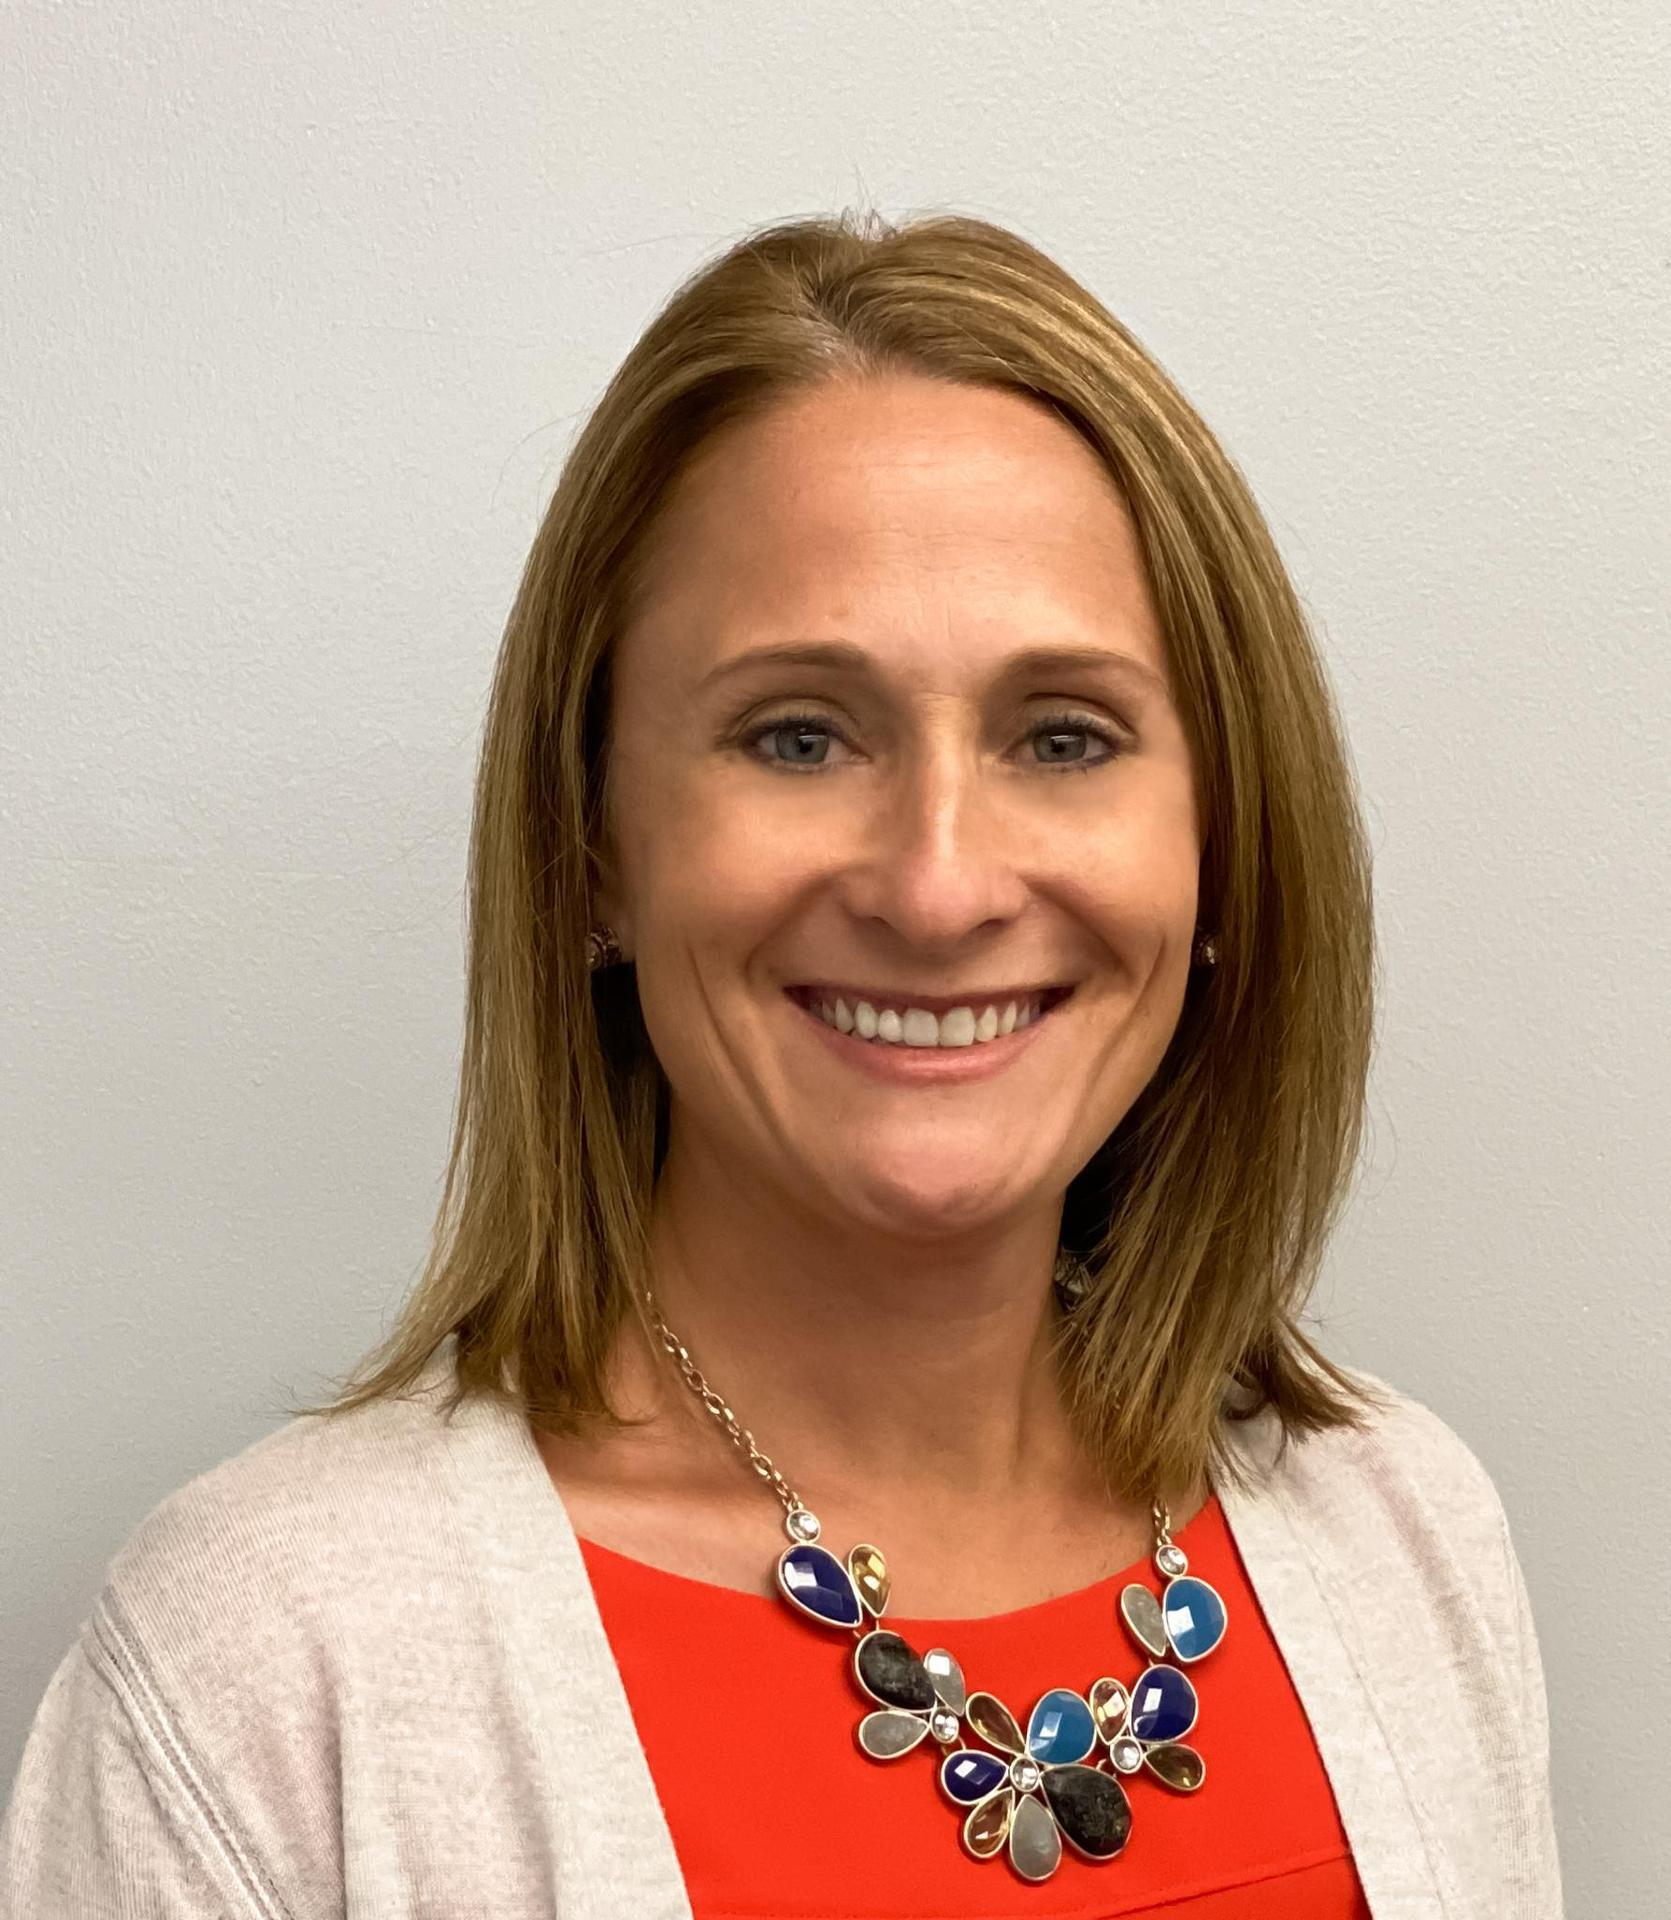 Shelley Mendez, Director of Elementary Curriculum and Instruction